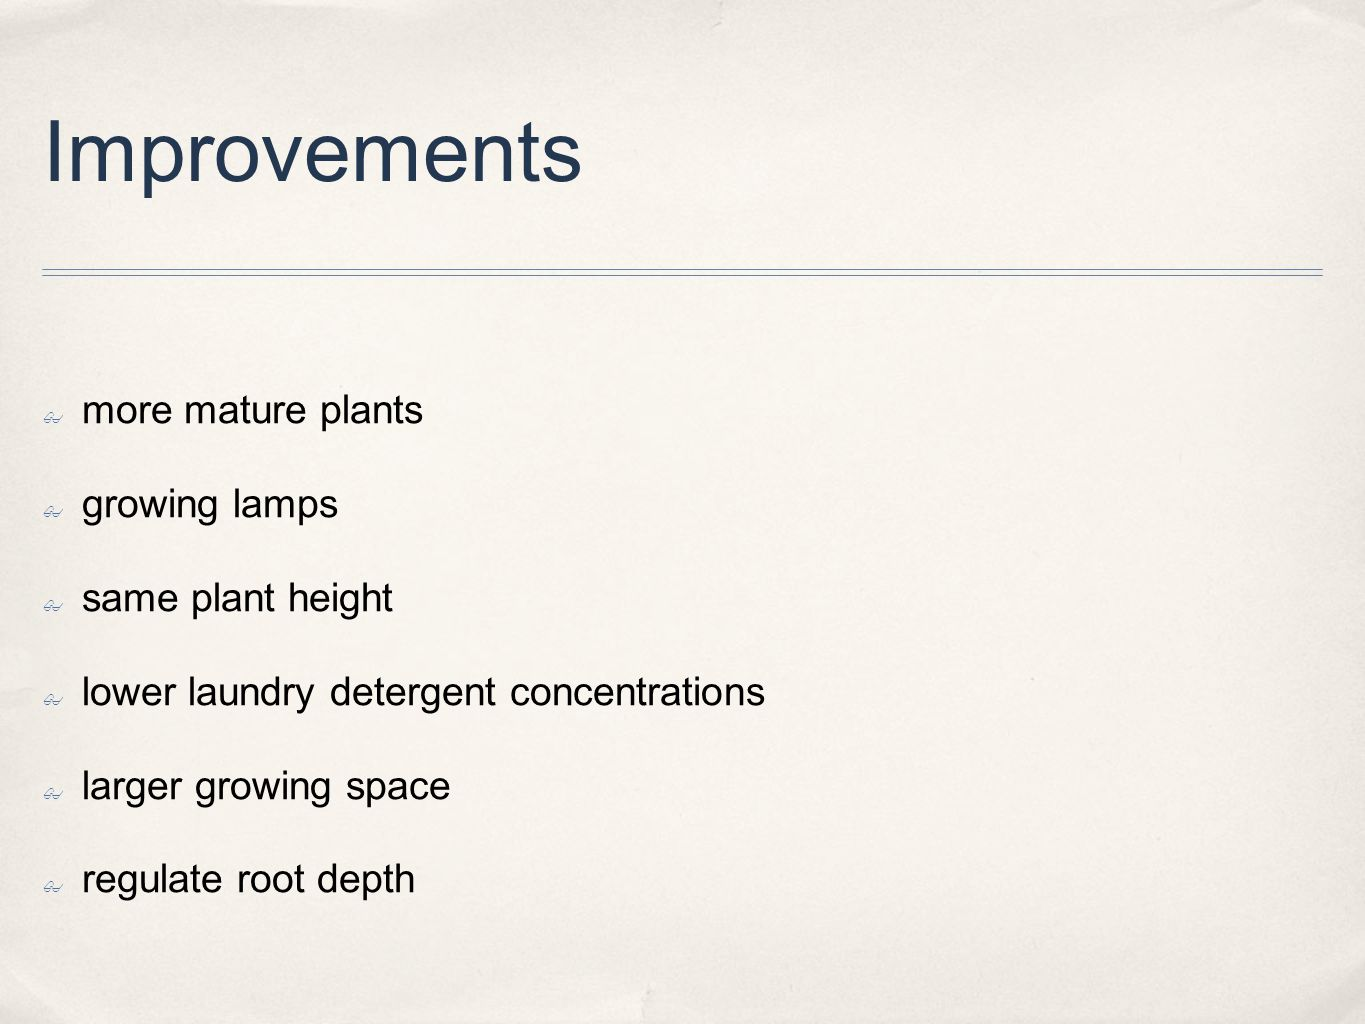 Improvements ✤ more mature plants ✤ growing lamps ✤ same plant height ✤ lower laundry detergent concentrations ✤ larger growing space ✤ regulate root depth